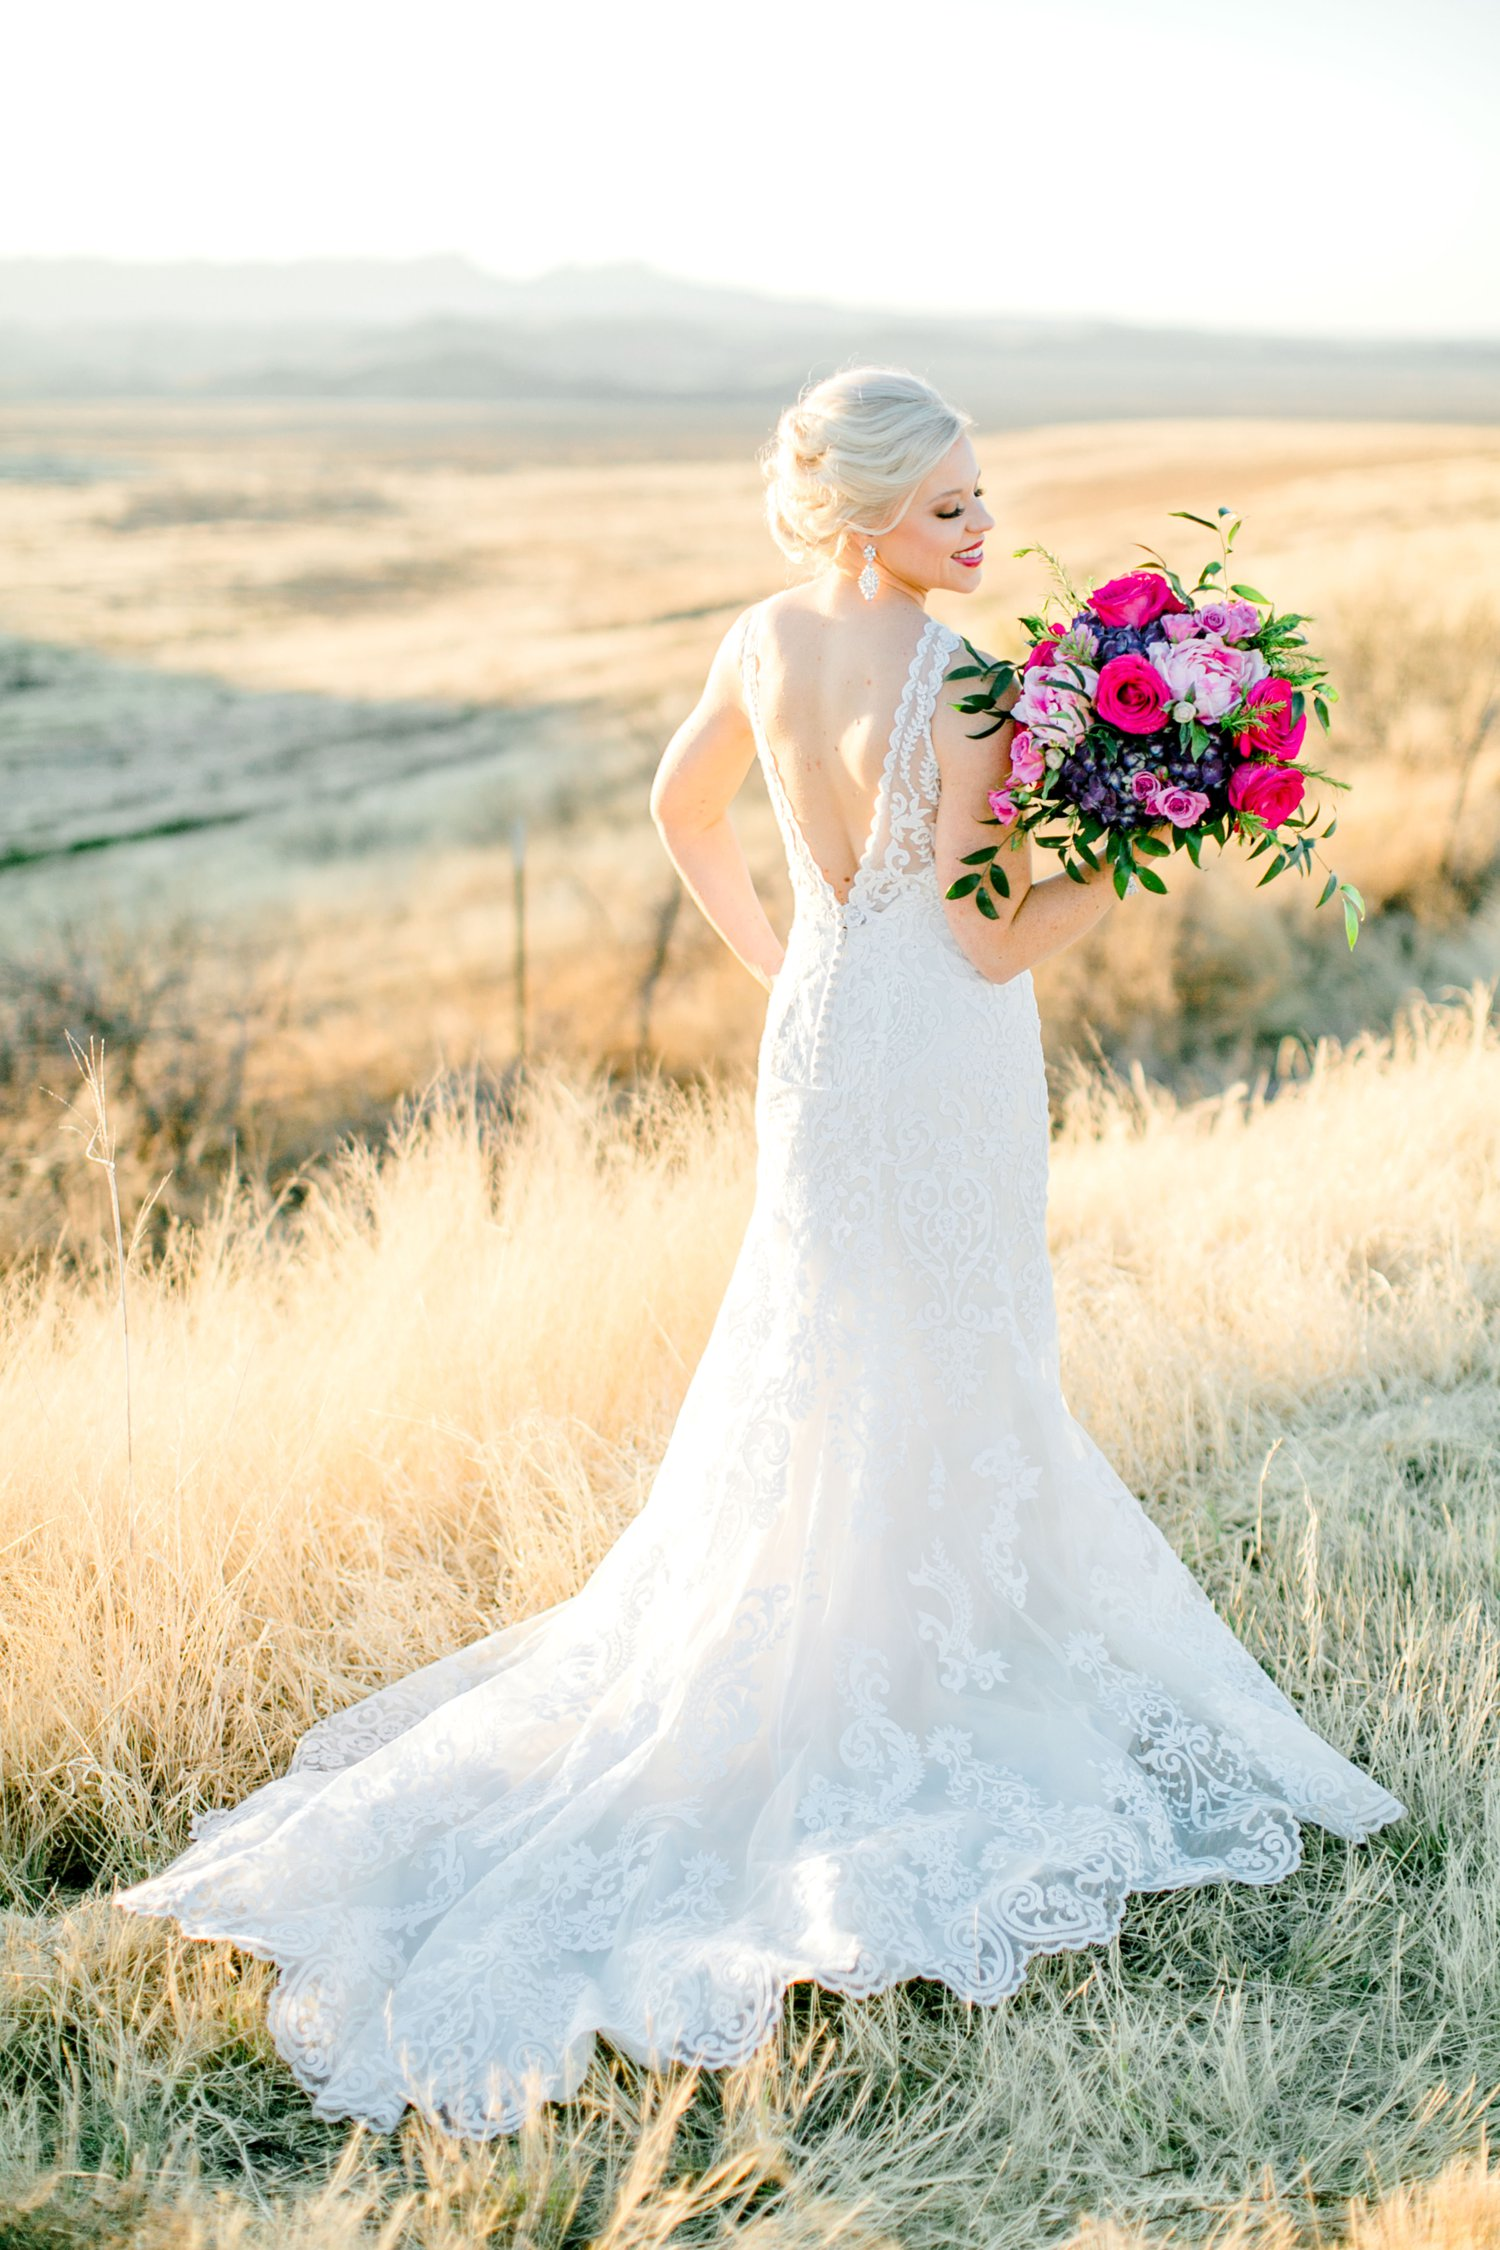 Jenna-evans-bridals-balmorhea-texas-fort-davis-wedding-photographer-lubbock-photographer__0056.jpg